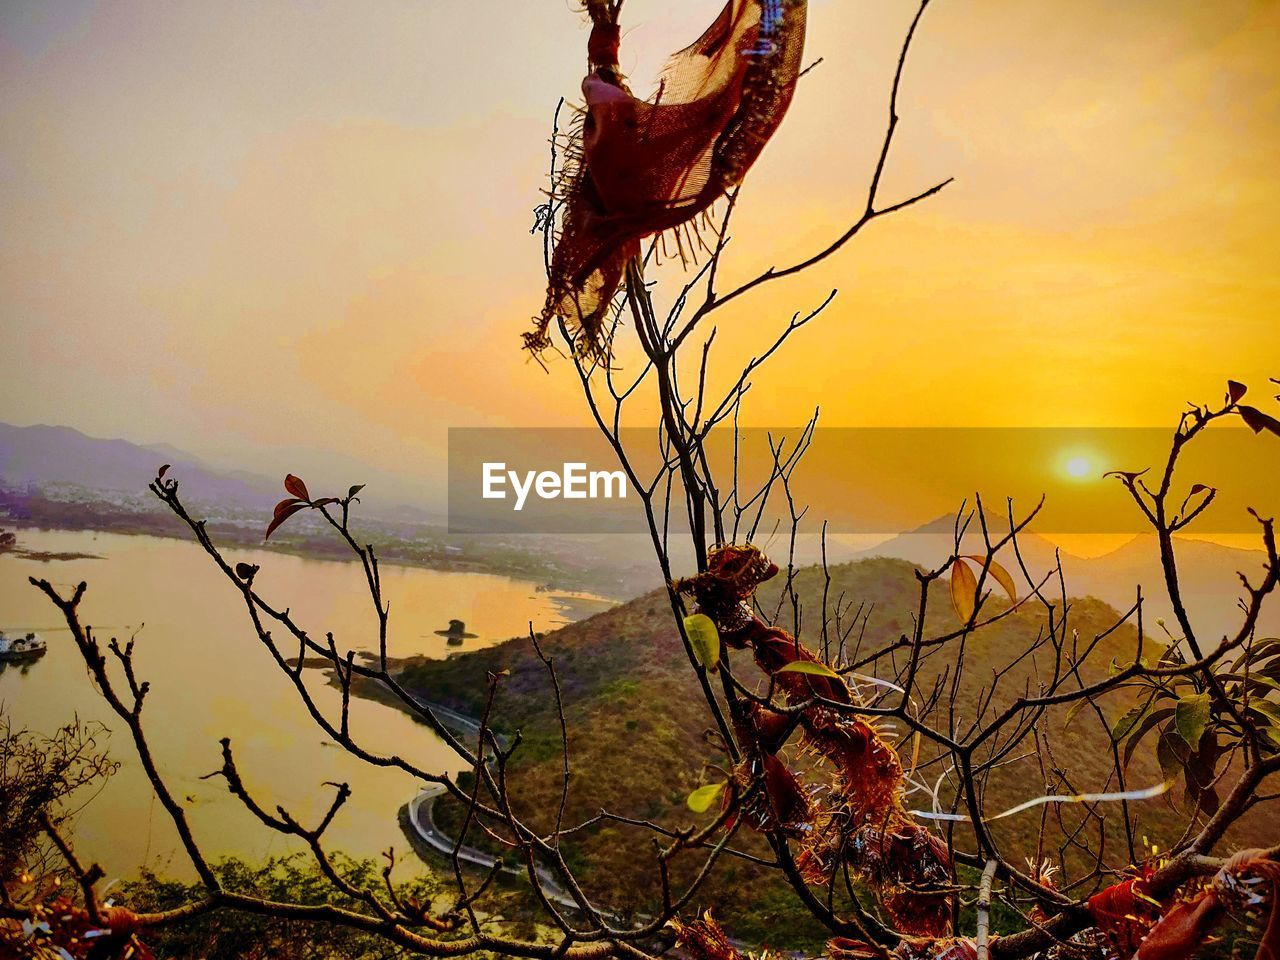 sunset, sky, orange color, beauty in nature, plant, scenics - nature, nature, tranquility, tranquil scene, sun, tree, no people, branch, non-urban scene, idyllic, water, outdoors, land, sea, dead plant